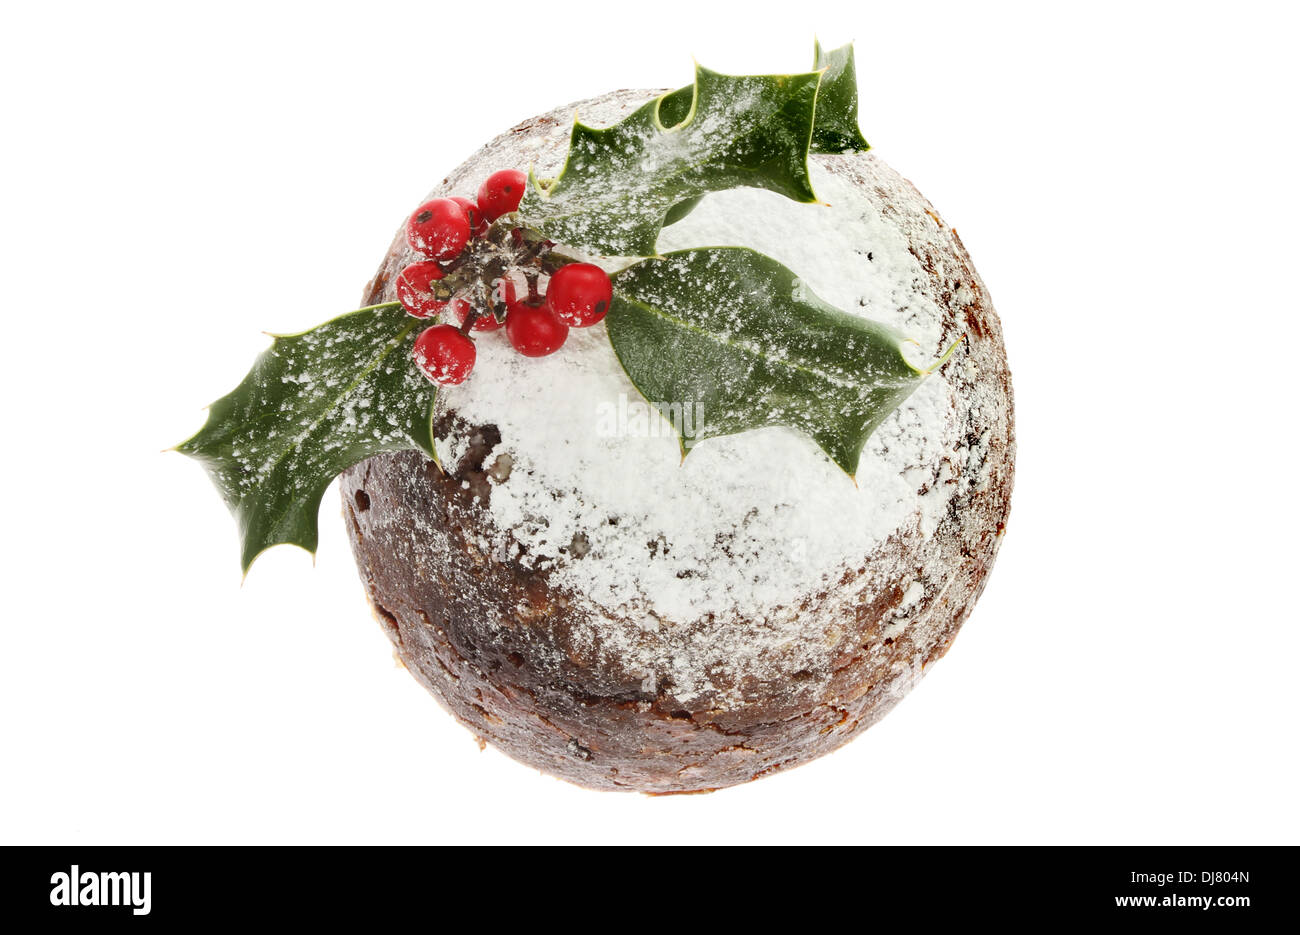 Holly decorated Christmas pudding viewed from above - Stock Image